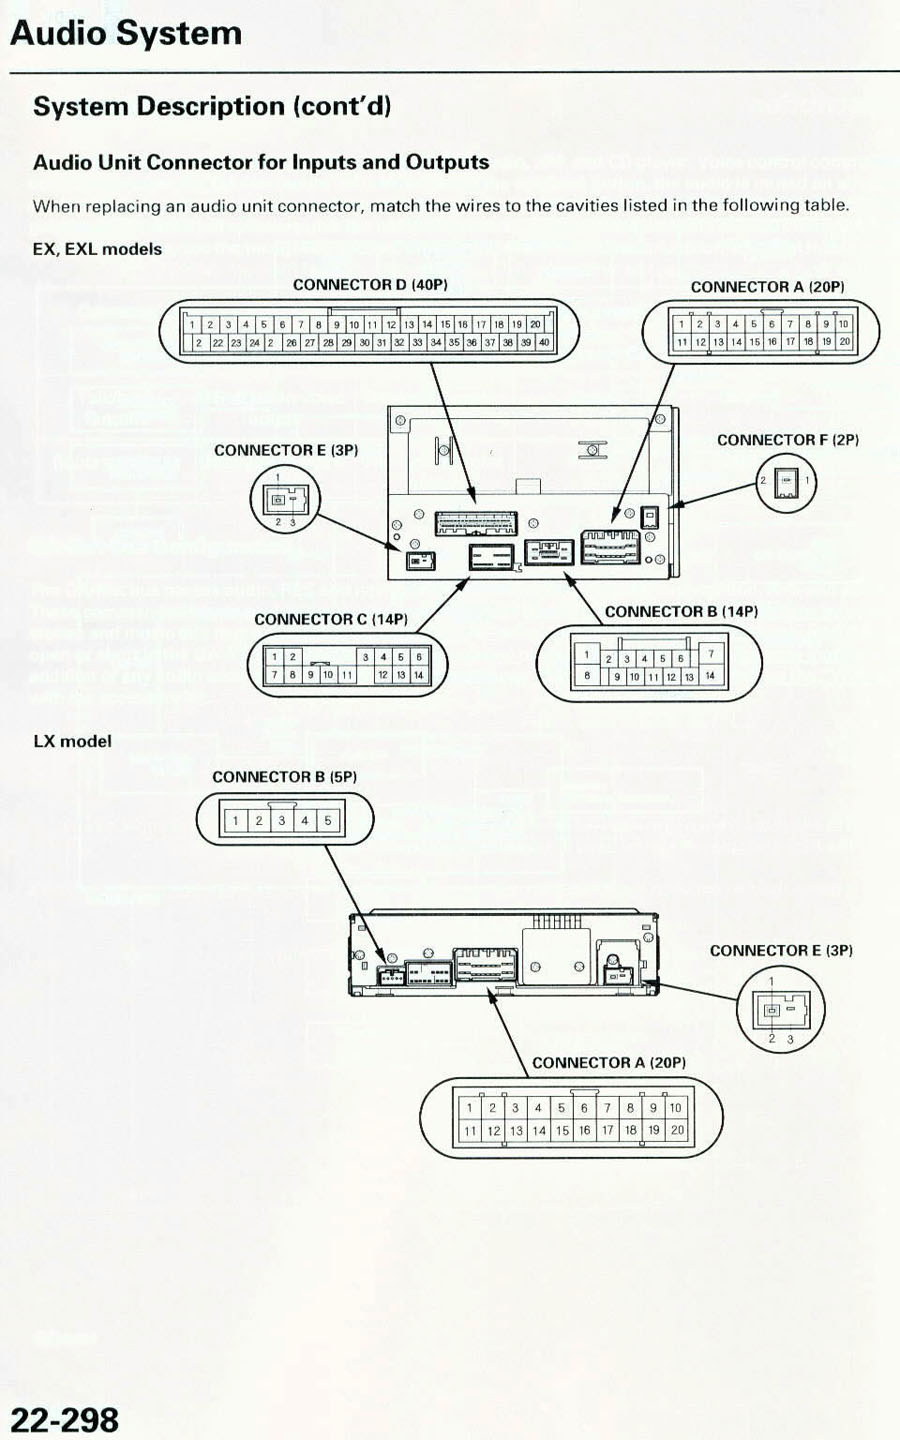 32969d1200063279 re factory subwoofer aftermarket hu audio_connector 2006 re factory subwoofer and aftermarket hu honda pilot honda 4 Prong Trailer Wiring Diagram at edmiracle.co